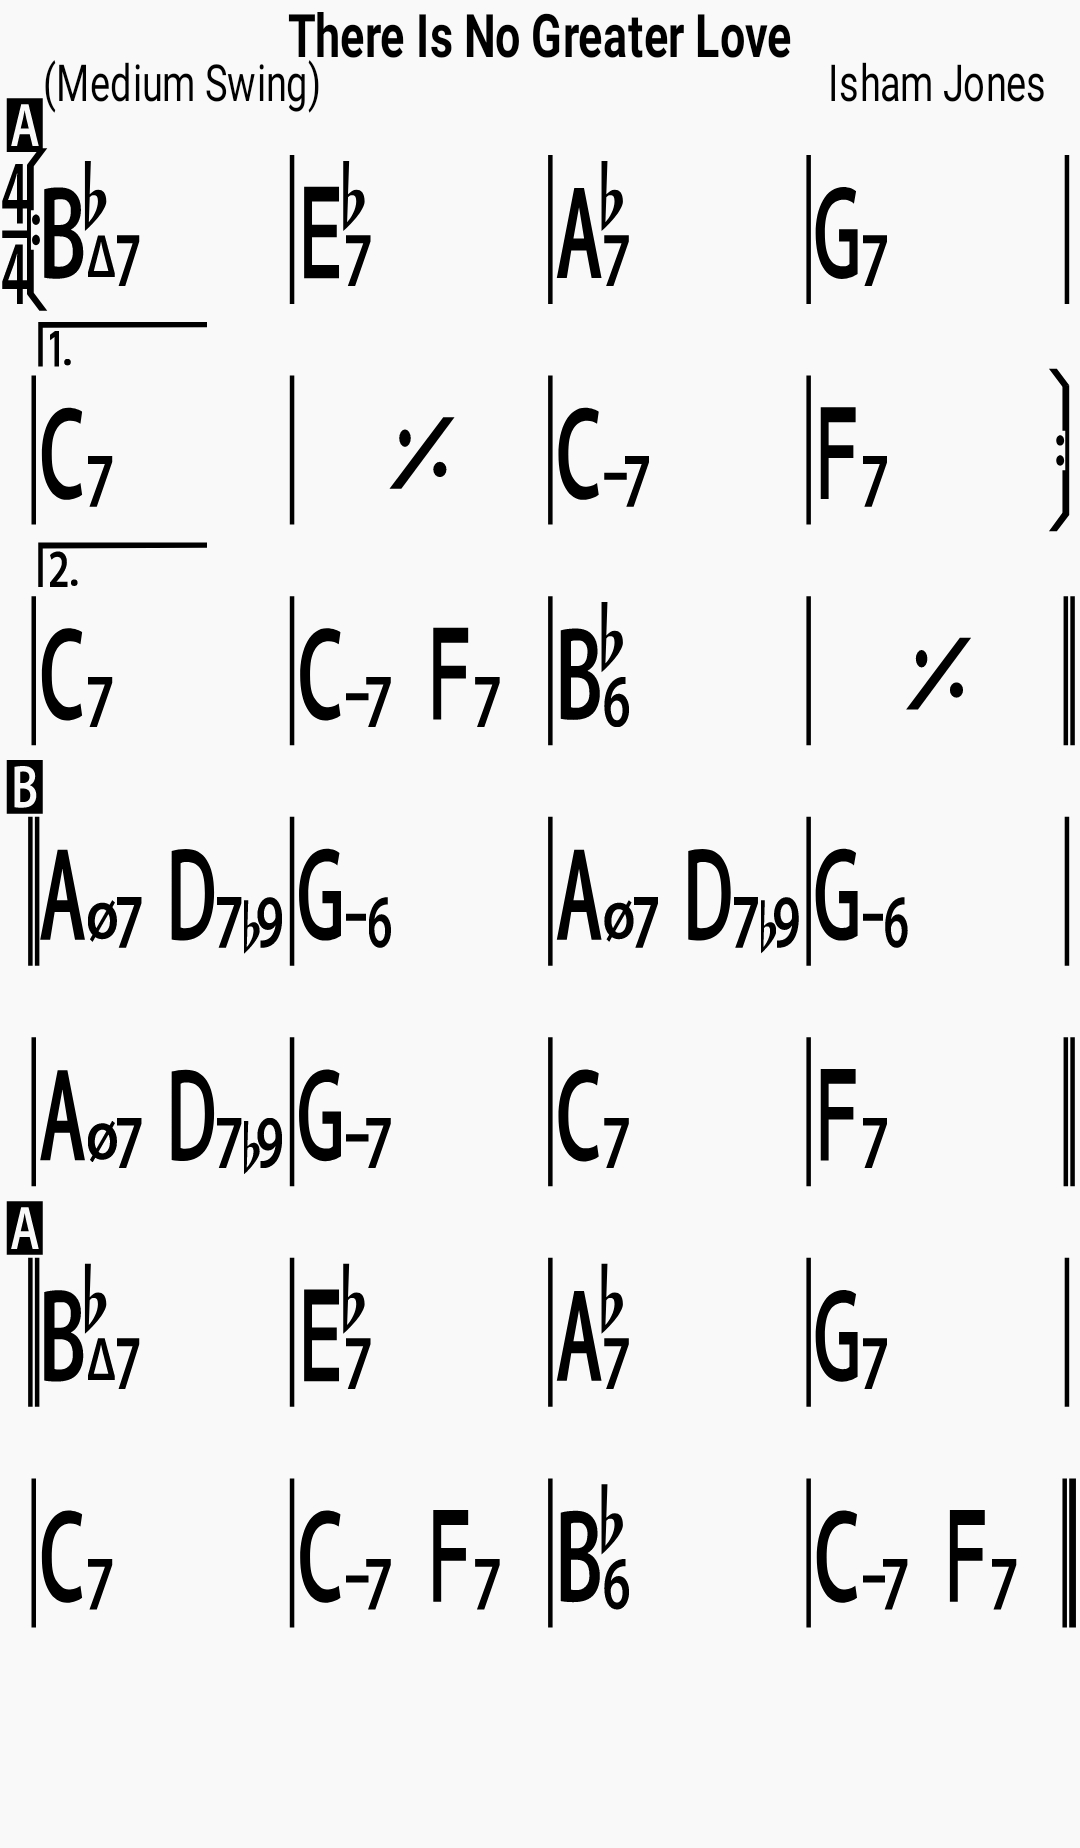 Chord chart for the jazz standard There Is No Greater Love